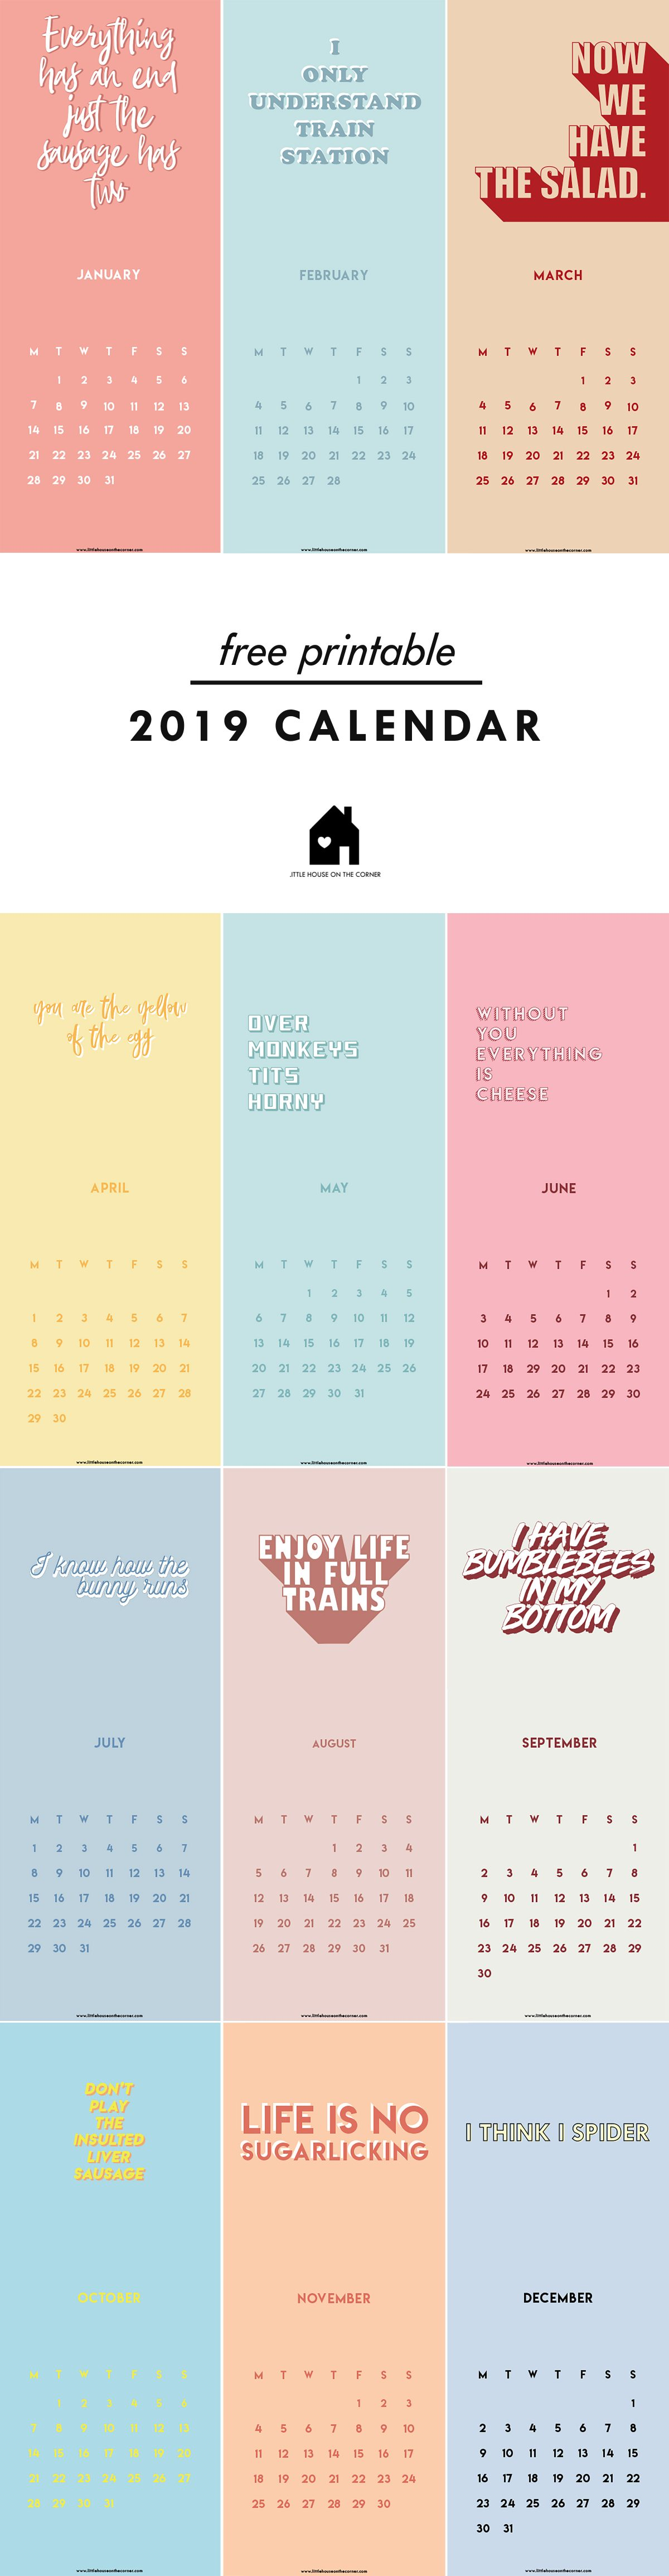 Free Printable 2019 Calendar | Little House On The Corner